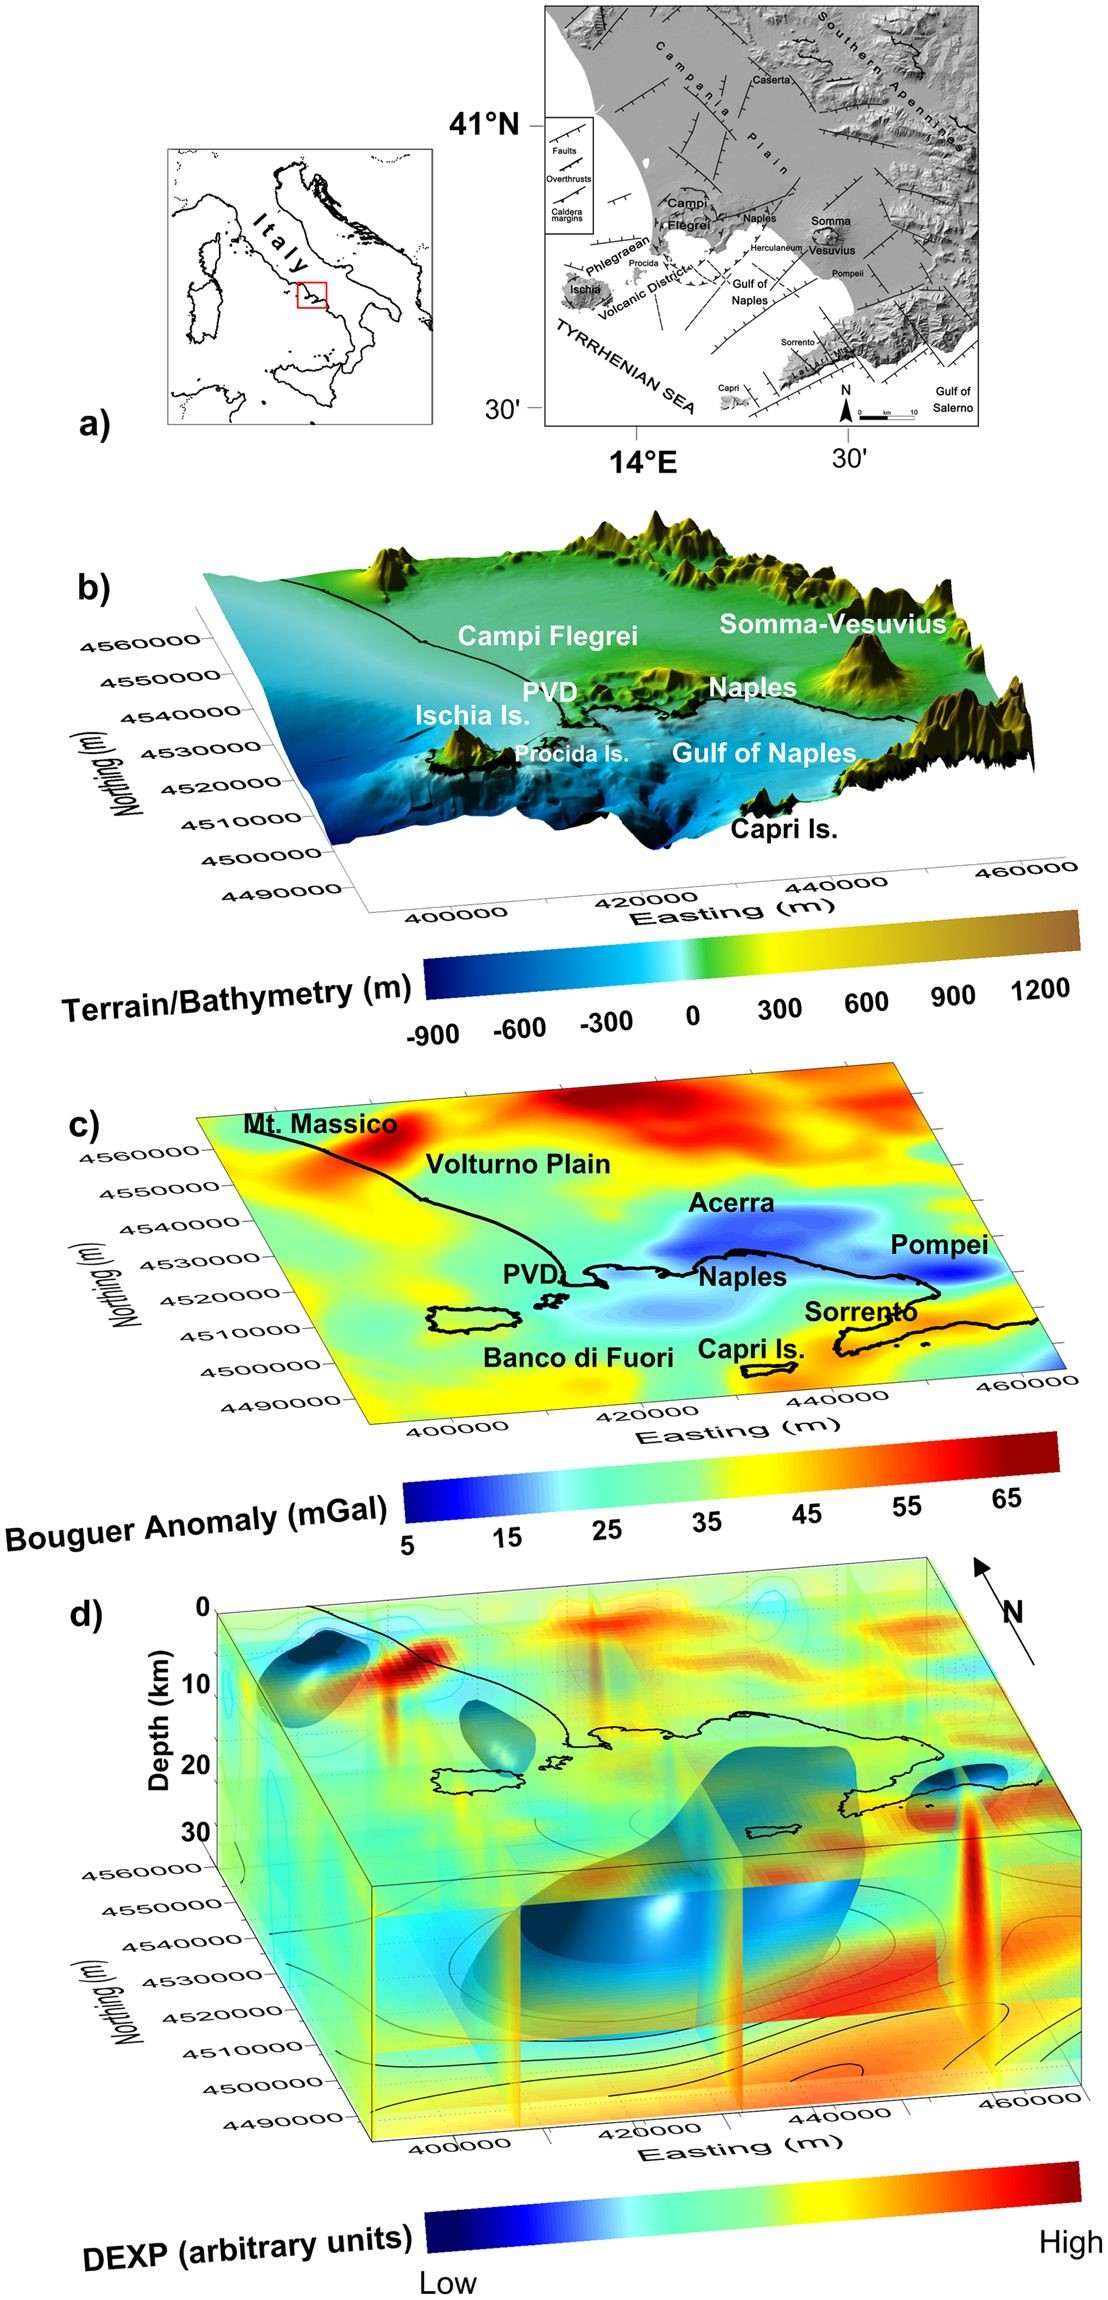 Figure 2 Gravity anomaly features of the Campania Active Volcanic Area: (a) Location of the study area (modified after)13. (b) Digital Terrain Model. (c) Detrended gravity anomaly map. (d) DEXP image of the sources of the anomalies.